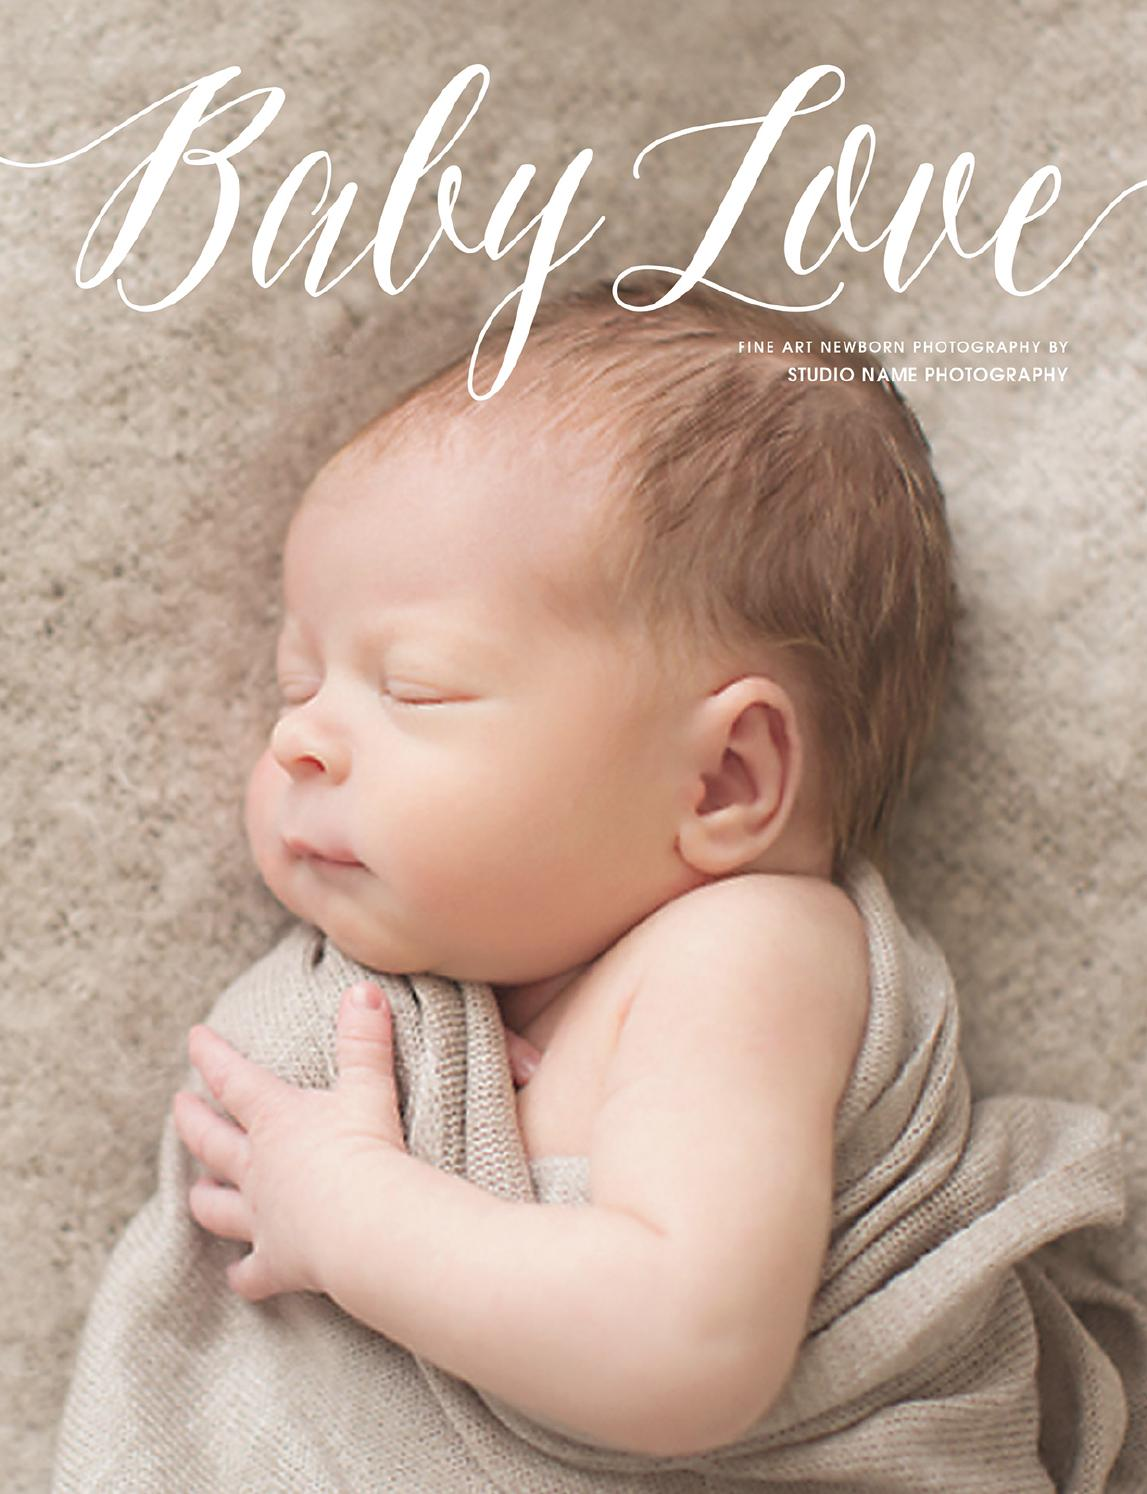 Newborn photography marketing magazine baby love by fotovella by fotovella issuu